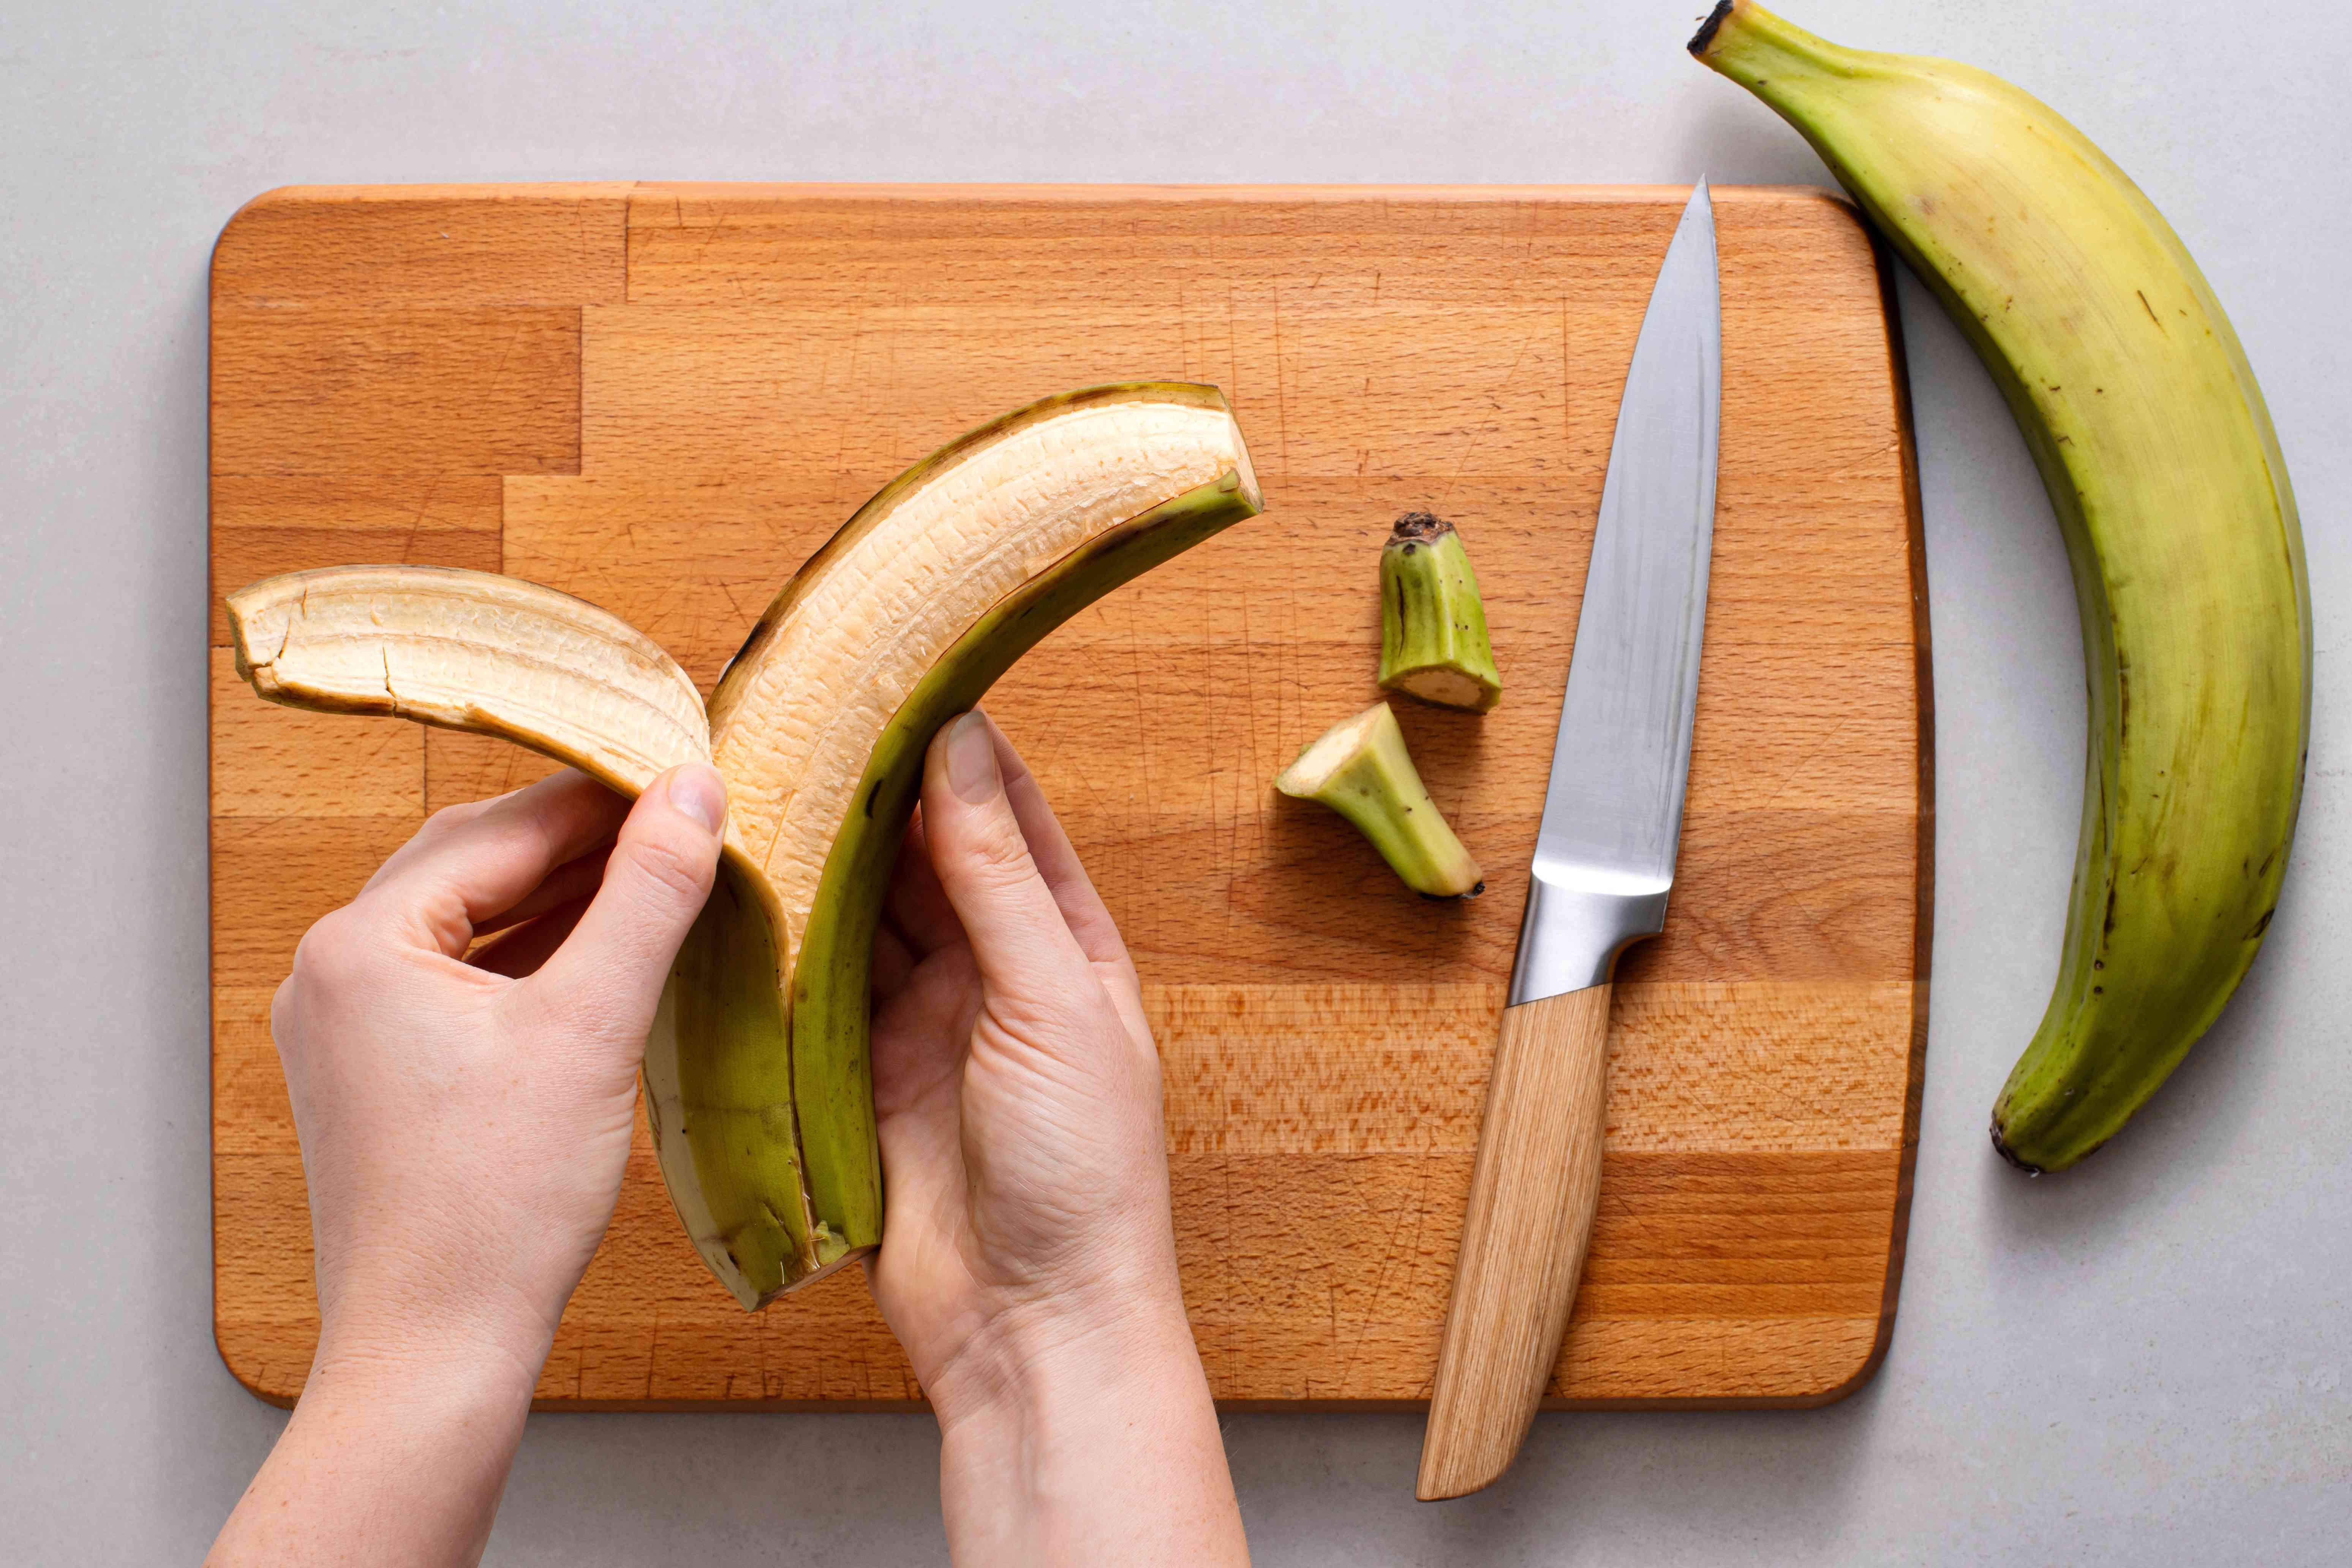 peel the Plantains